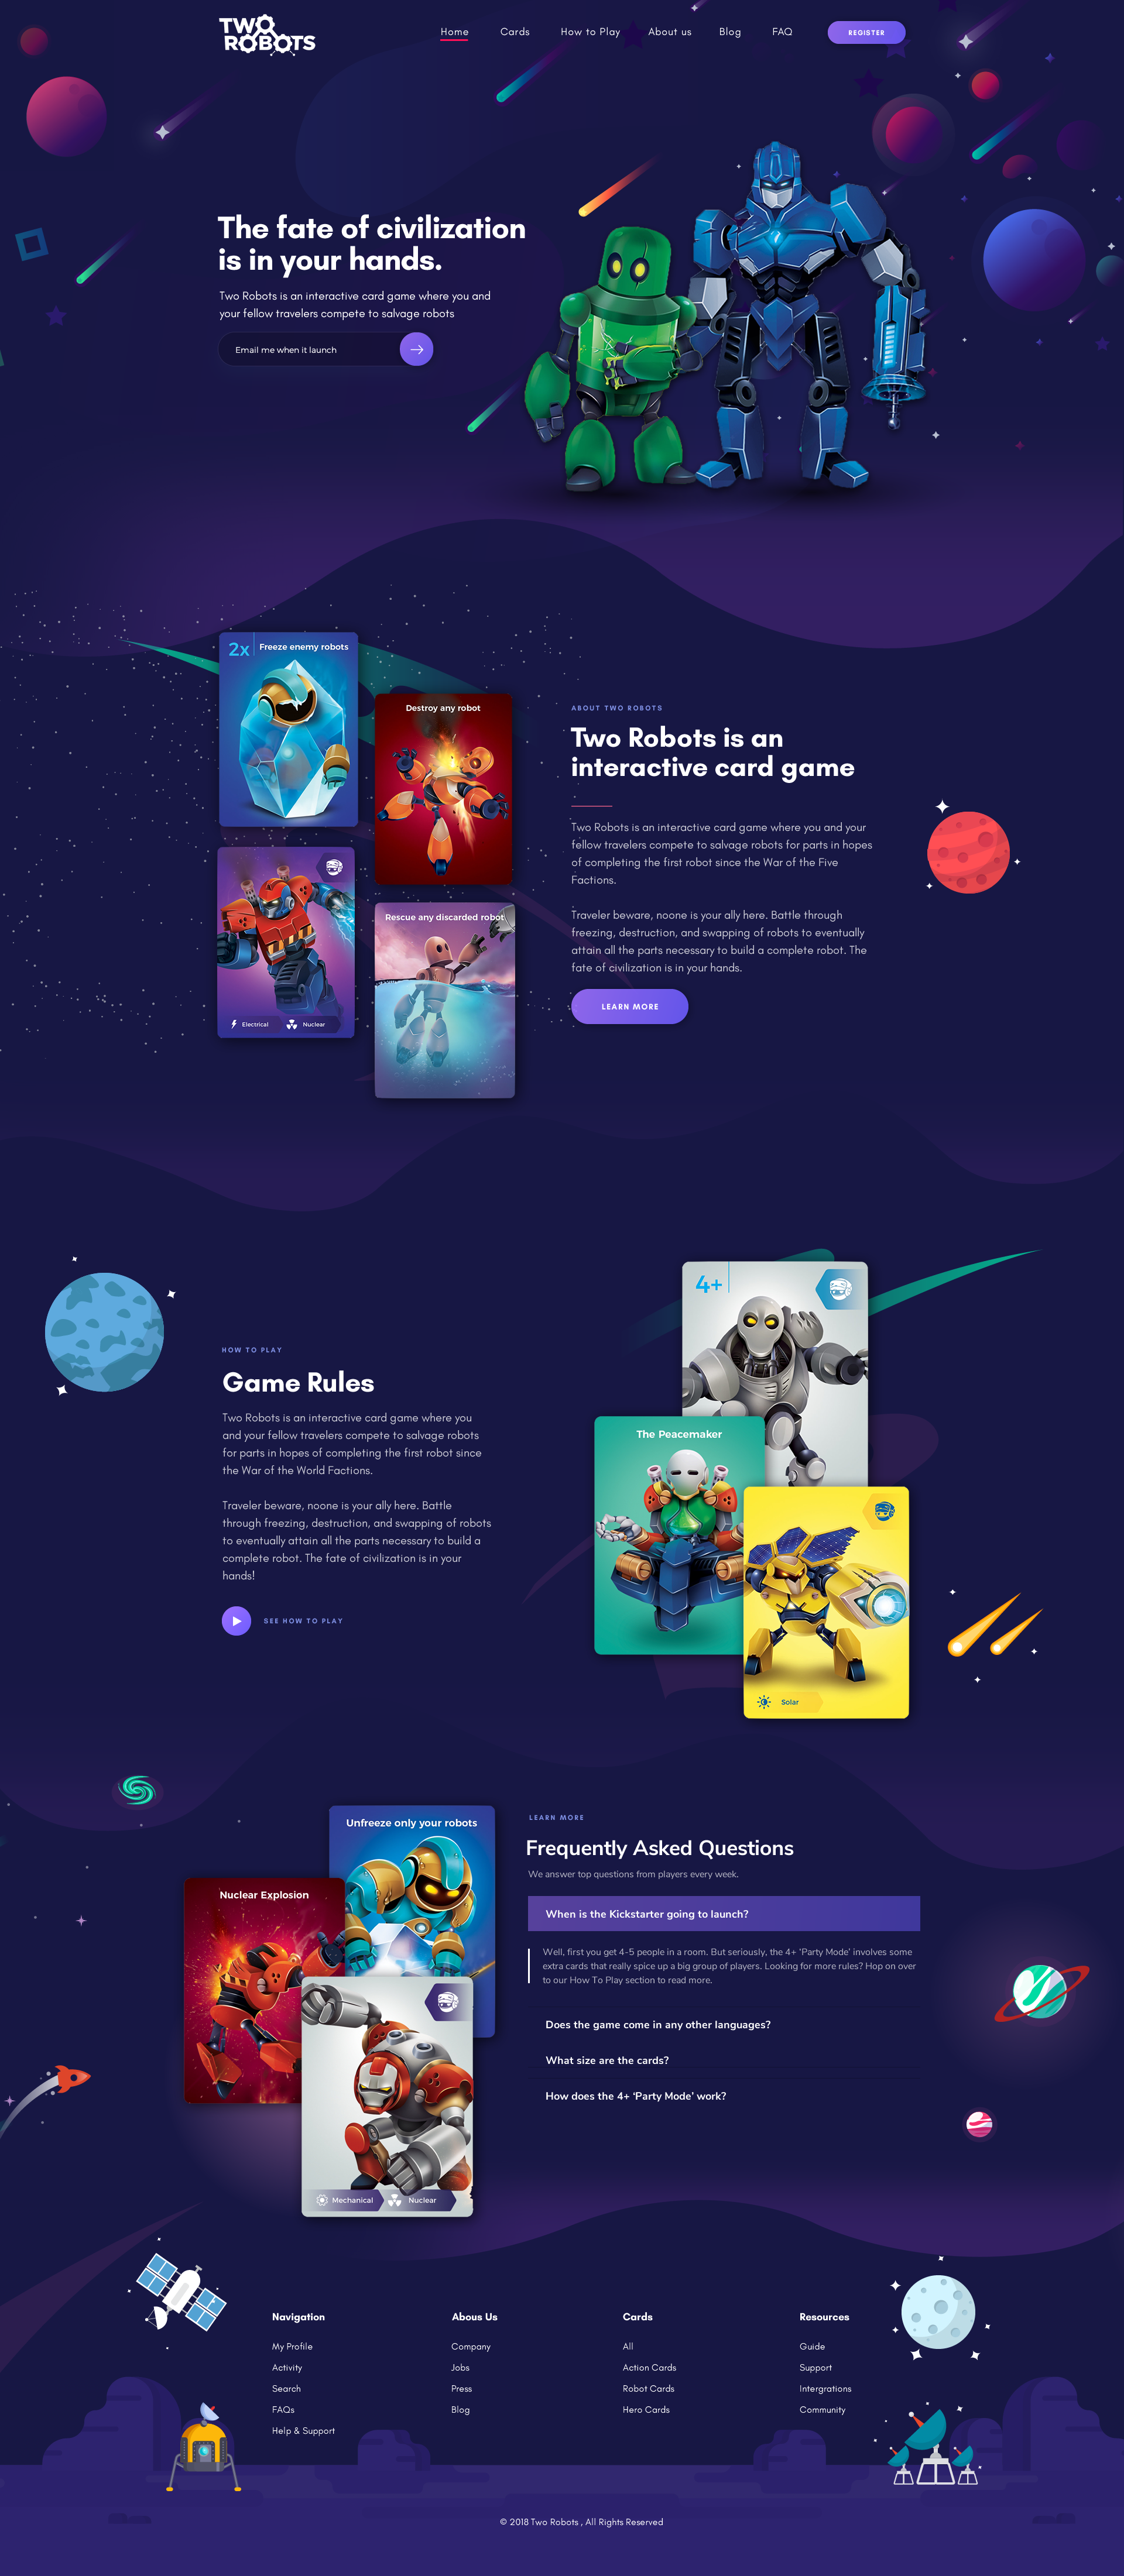 Designs Design Two Robots A Card Game Website Awesome Images Included Landing P Game Card Design Newsletter Design Layout Website Layout Inspiration